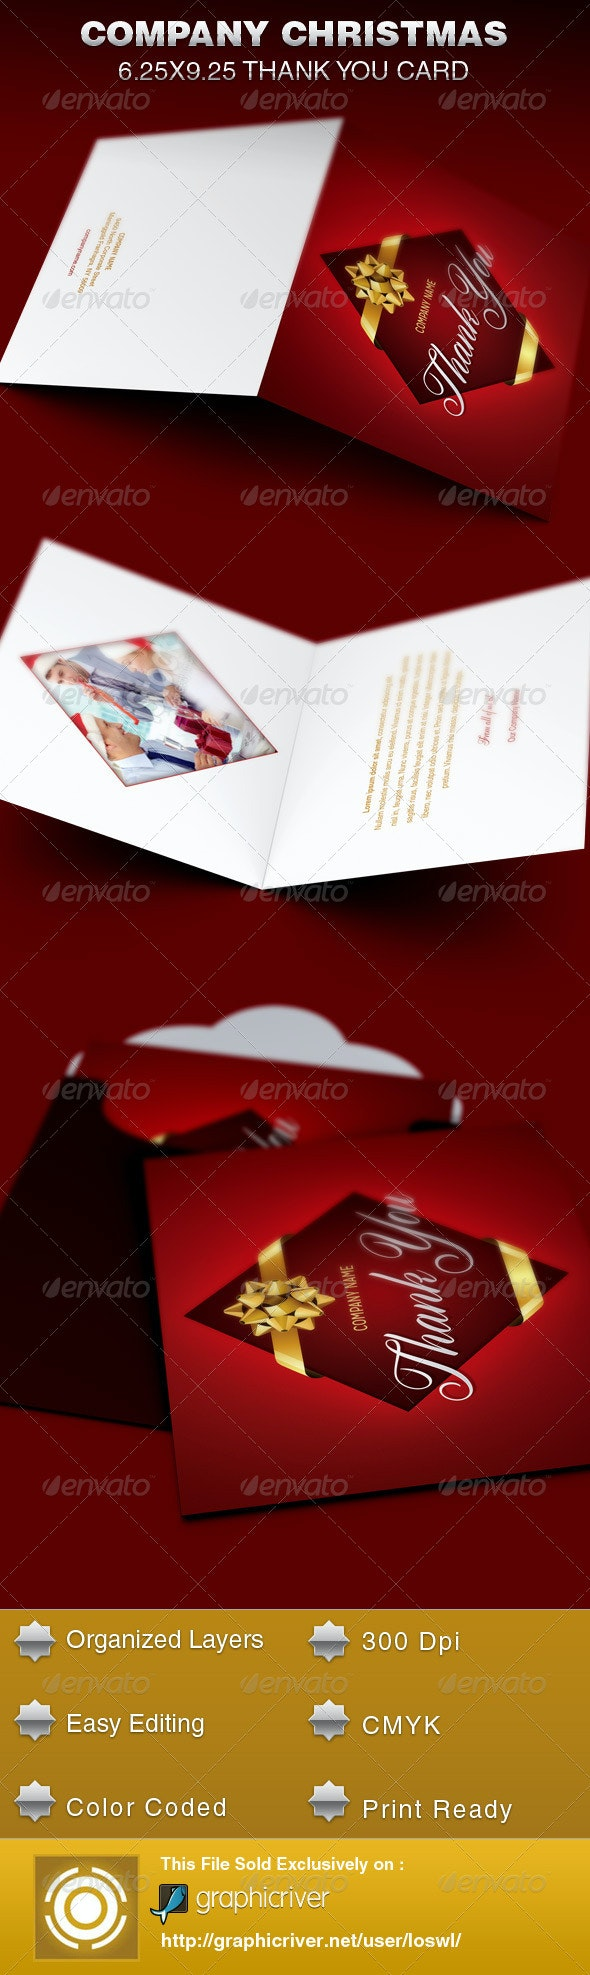 Company Christmas Thank You Card Template - Cards & Invites Print Templates